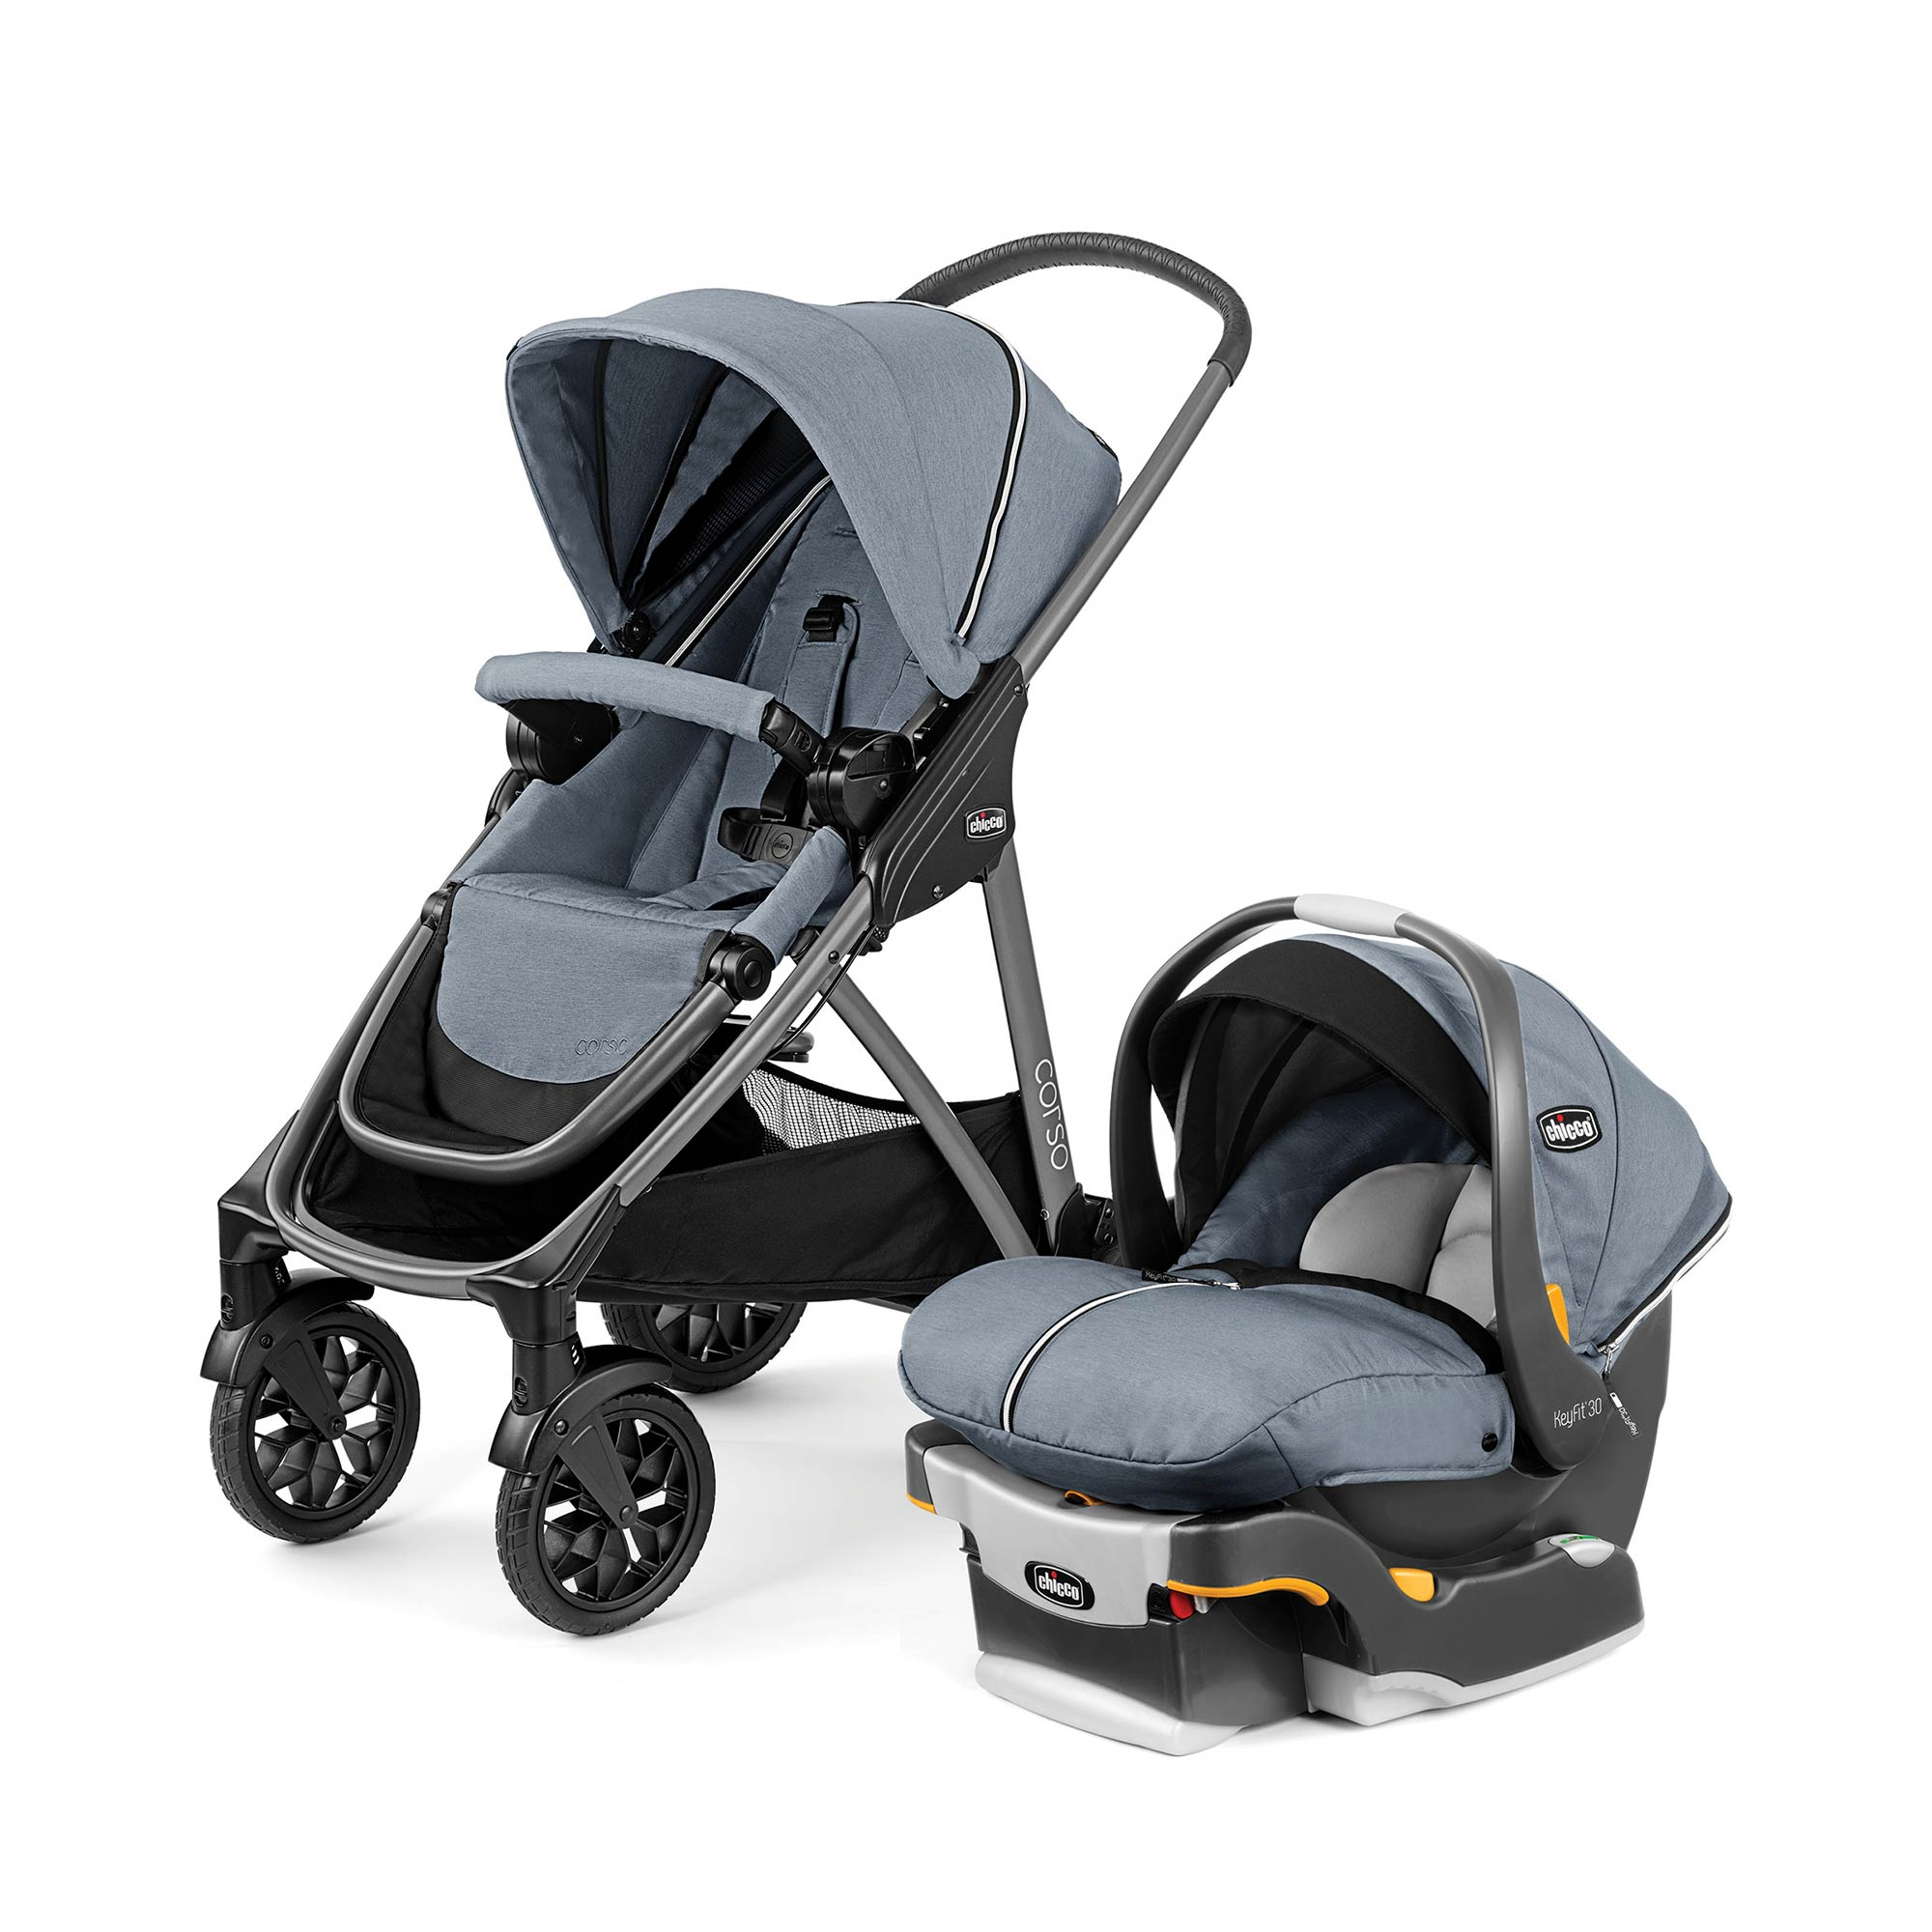 Corso Modular Travel System in Silverspring Fashion | Chicco